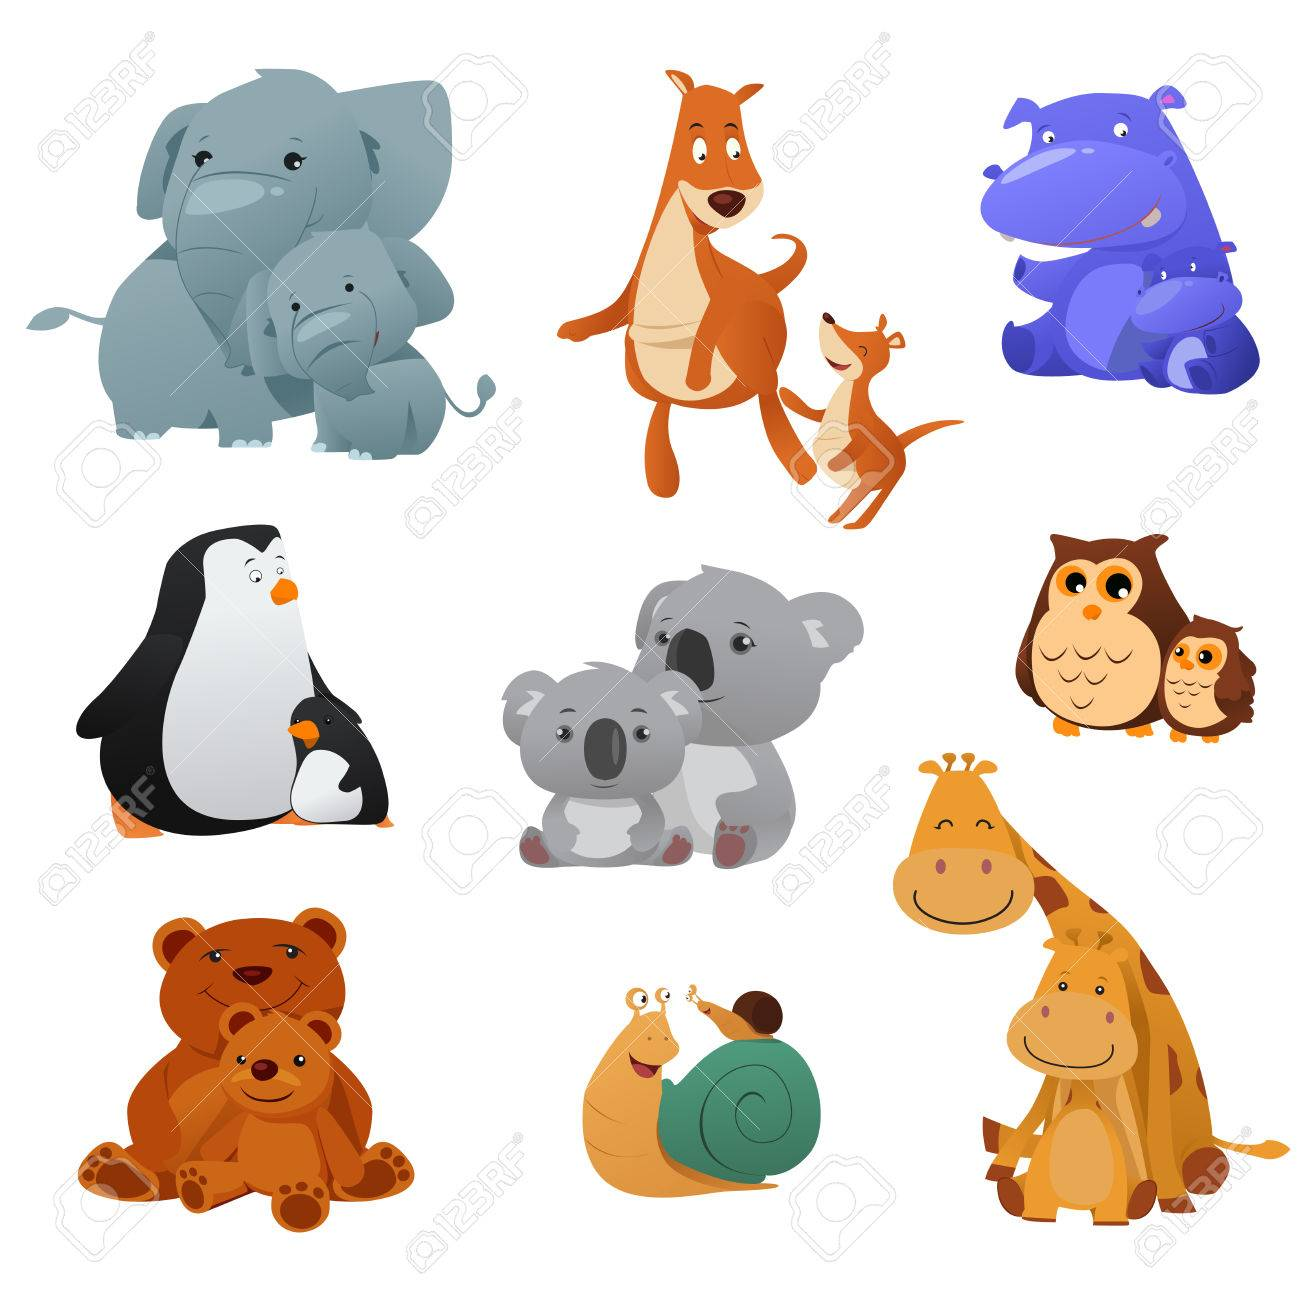 Clipart Images Of Animals And Their Young Ones 20 Free